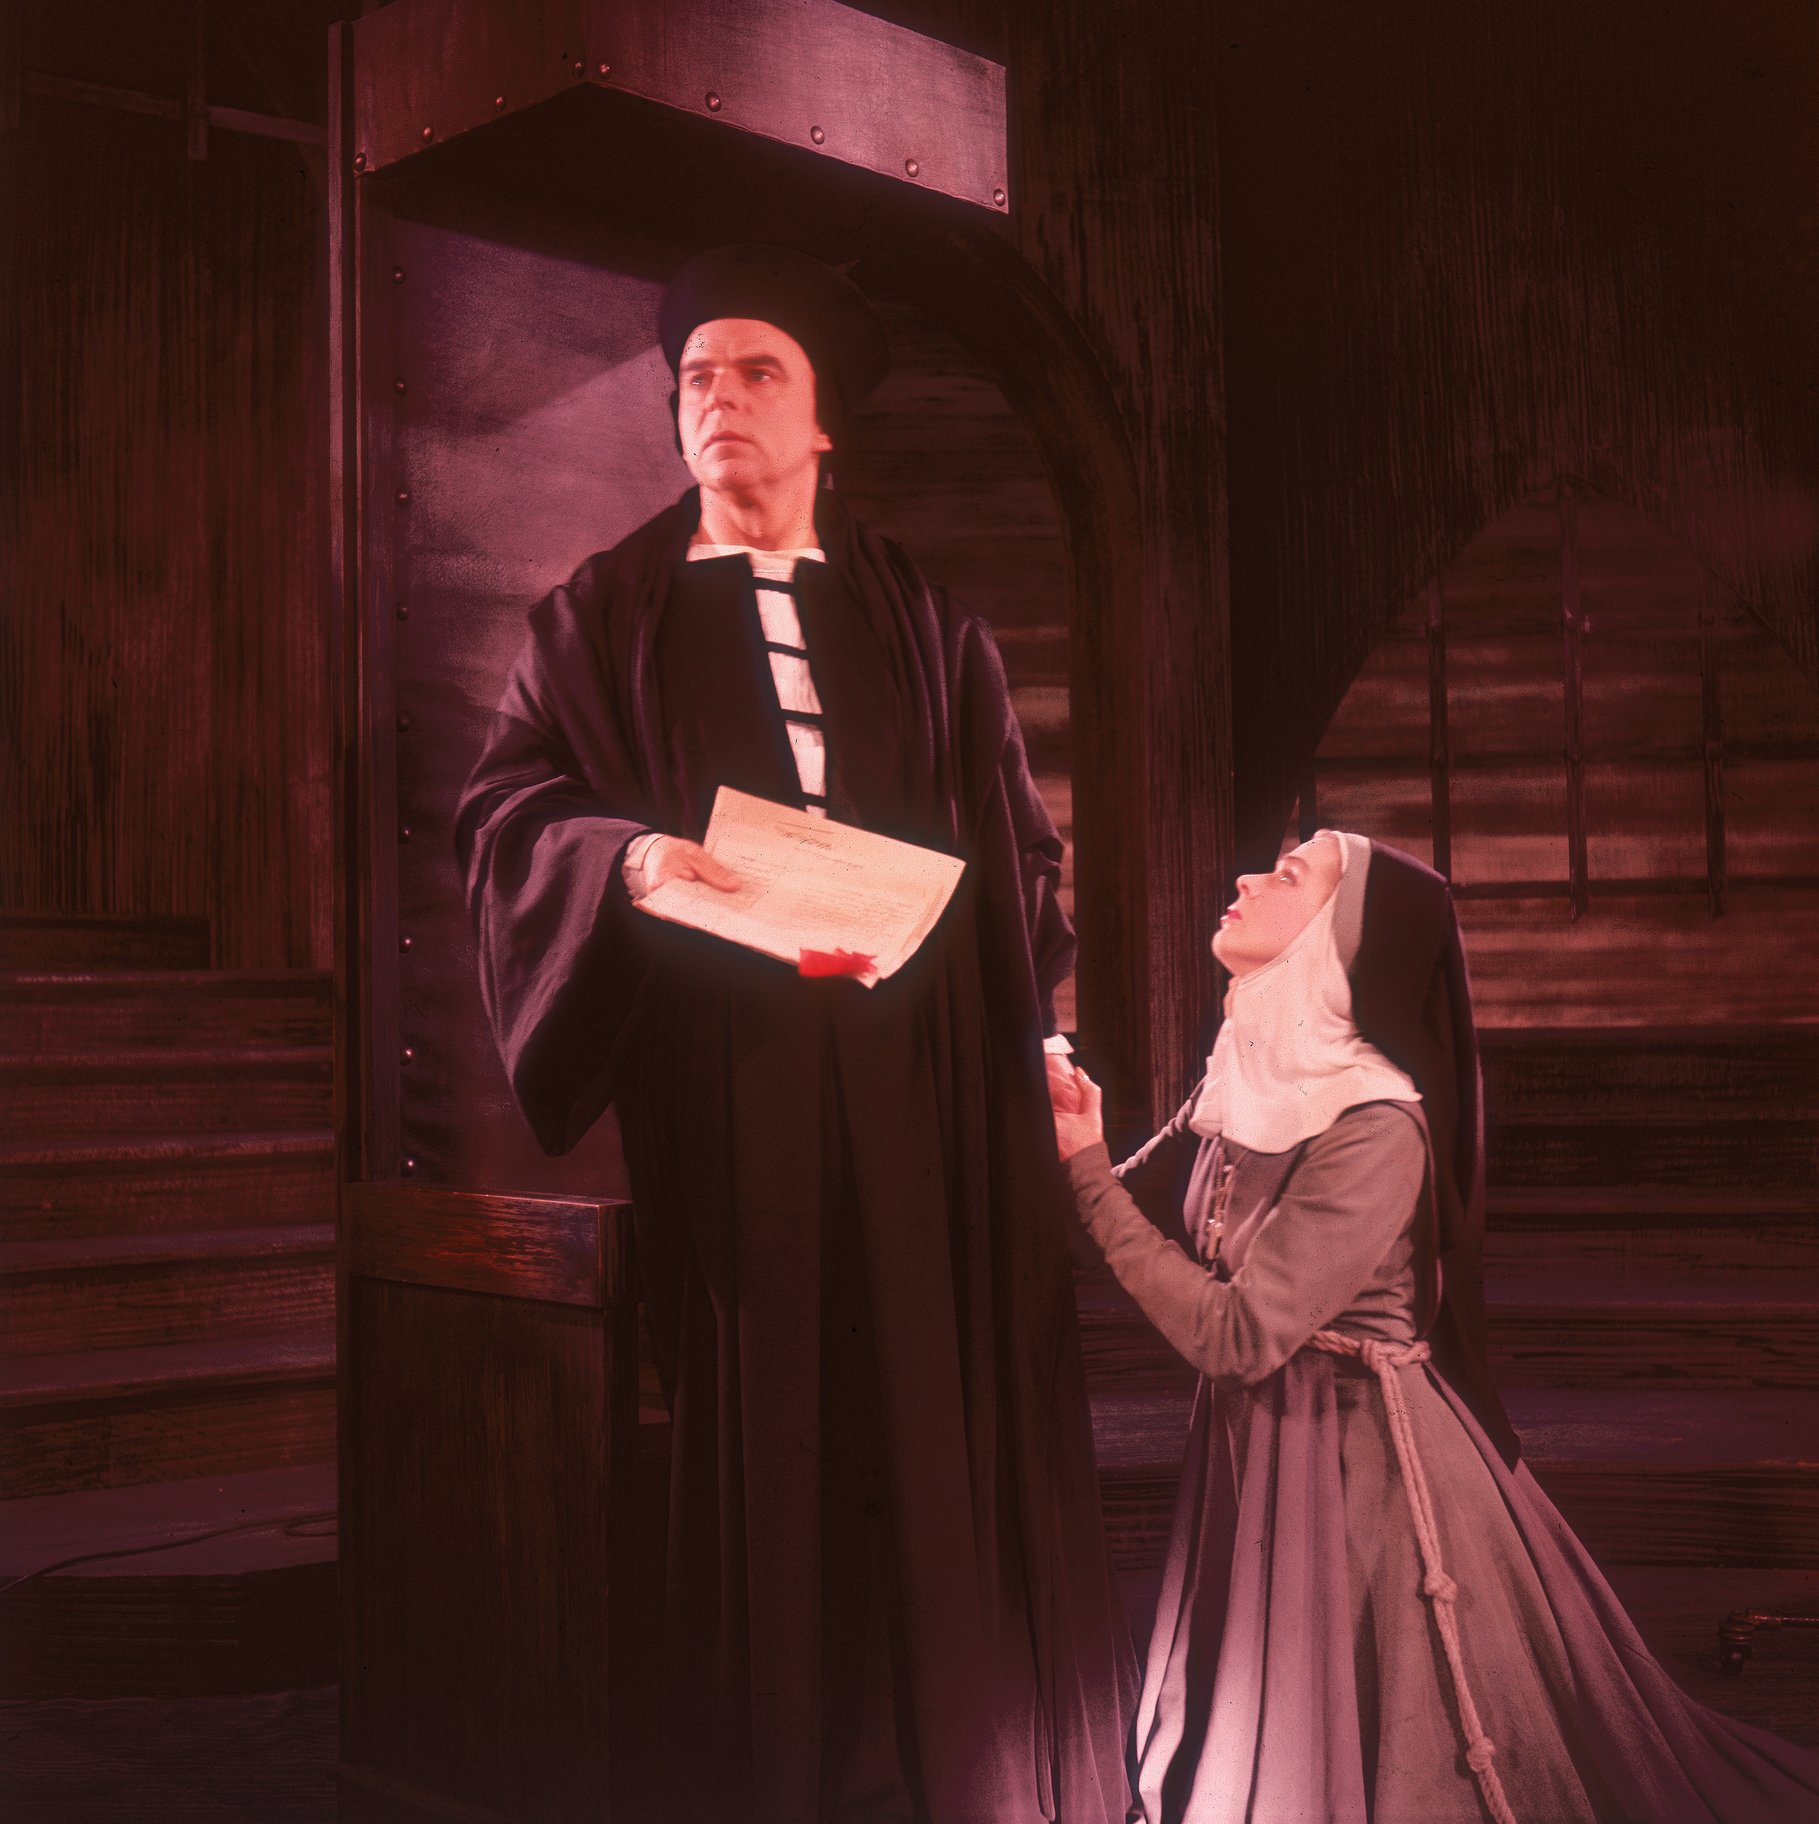 A nun pleads on her knees to an older man.